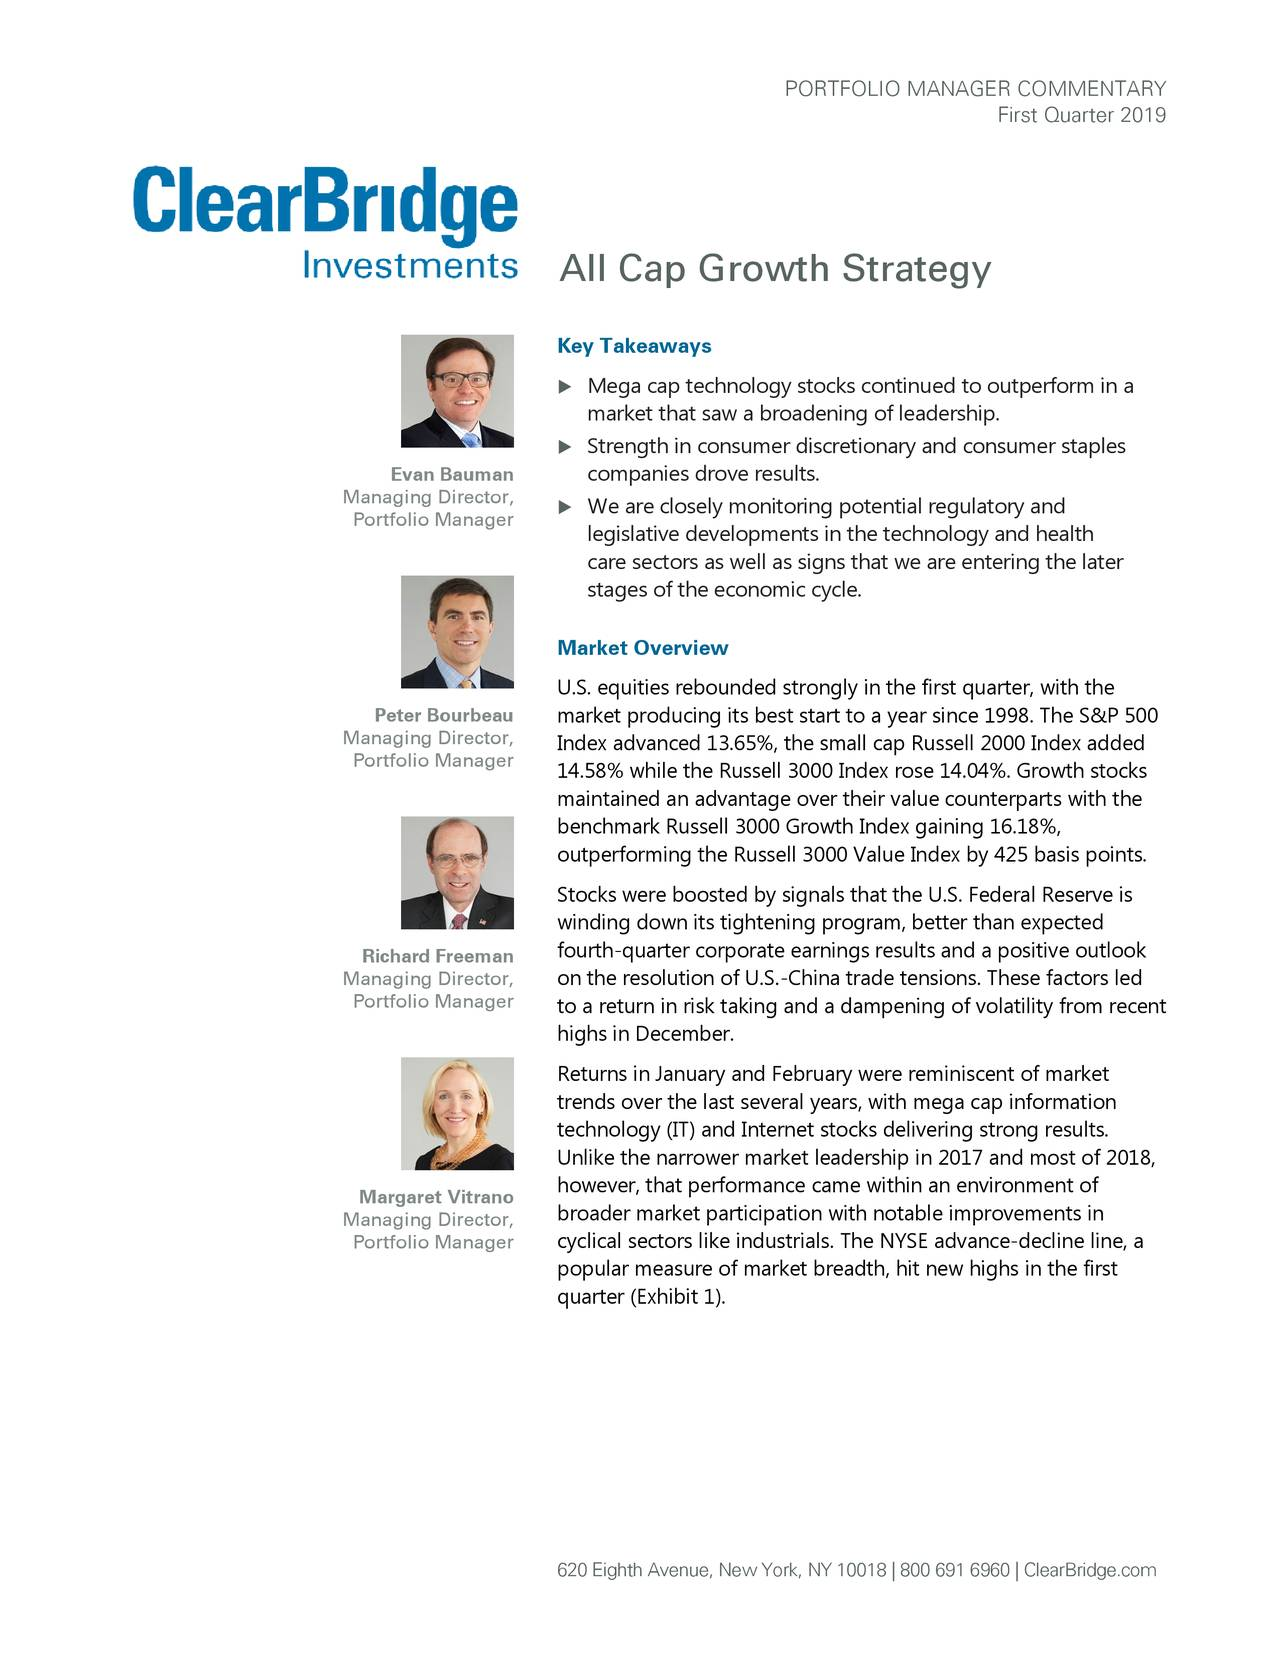 First Quarter 2019 All Cap Growth Strategy Key Takeaways  Mega cap technology stocks continued to outperform in a market that saw a broadening of leadership.  Strength in consumer discretionary and consumer staples Evan Bauman companies drove results. Managing Director, Portfolio Manager  We are closely monitoring potential regulatory and legislative developments in the technology and health care sectors as well as signs that we are entering the later stages of the economic cycle. Market Overview U.S. equities rebounded strongly in the first quarter, with the Peter Bourbeau market producing its best start to a year since 1998. The S&P 500 Managing Director, Index advanced 13.65%, the small cap Russell 2000 Index added Portfolio Manager 14.58% while the Russell 3000 Index rose 14.04%. Growth stocks maintained an advantage over their value counterparts with the benchmark Russell 3000 Growth Index gaining 16.18%, outperforming the Russell 3000 Value Index by 425 basis points. Stocks were boosted by signals that the U.S. Federal Reserve is winding down its tightening program, better than expected Richard Freeman fourth-quarter corporate earnings results and a positive outlook Managing Director, on the resolution of U.S.-China trade tensions. These factors led Portfolio Manager to a return in risk taking and a dampening of volatility from recent highs in December. Returns in January and February were reminiscent of market trends over the last several years, with mega cap information technology (IT) and Internet stocks delivering strong results. Unlike the narrower market leadership in 2017 and most of 2018, Margaret Vitrano however, that performance came within an environment of broader market participation with notable improvements in Managing Director, Portfolio Manager cyclical sectors like industrials. The NYSE advance-decline line, a popular measure of market breadth, hit new highs in the first quarter (Exhibit 1). 620 Eighth Avenue, New York, NY 10018   800 691 696